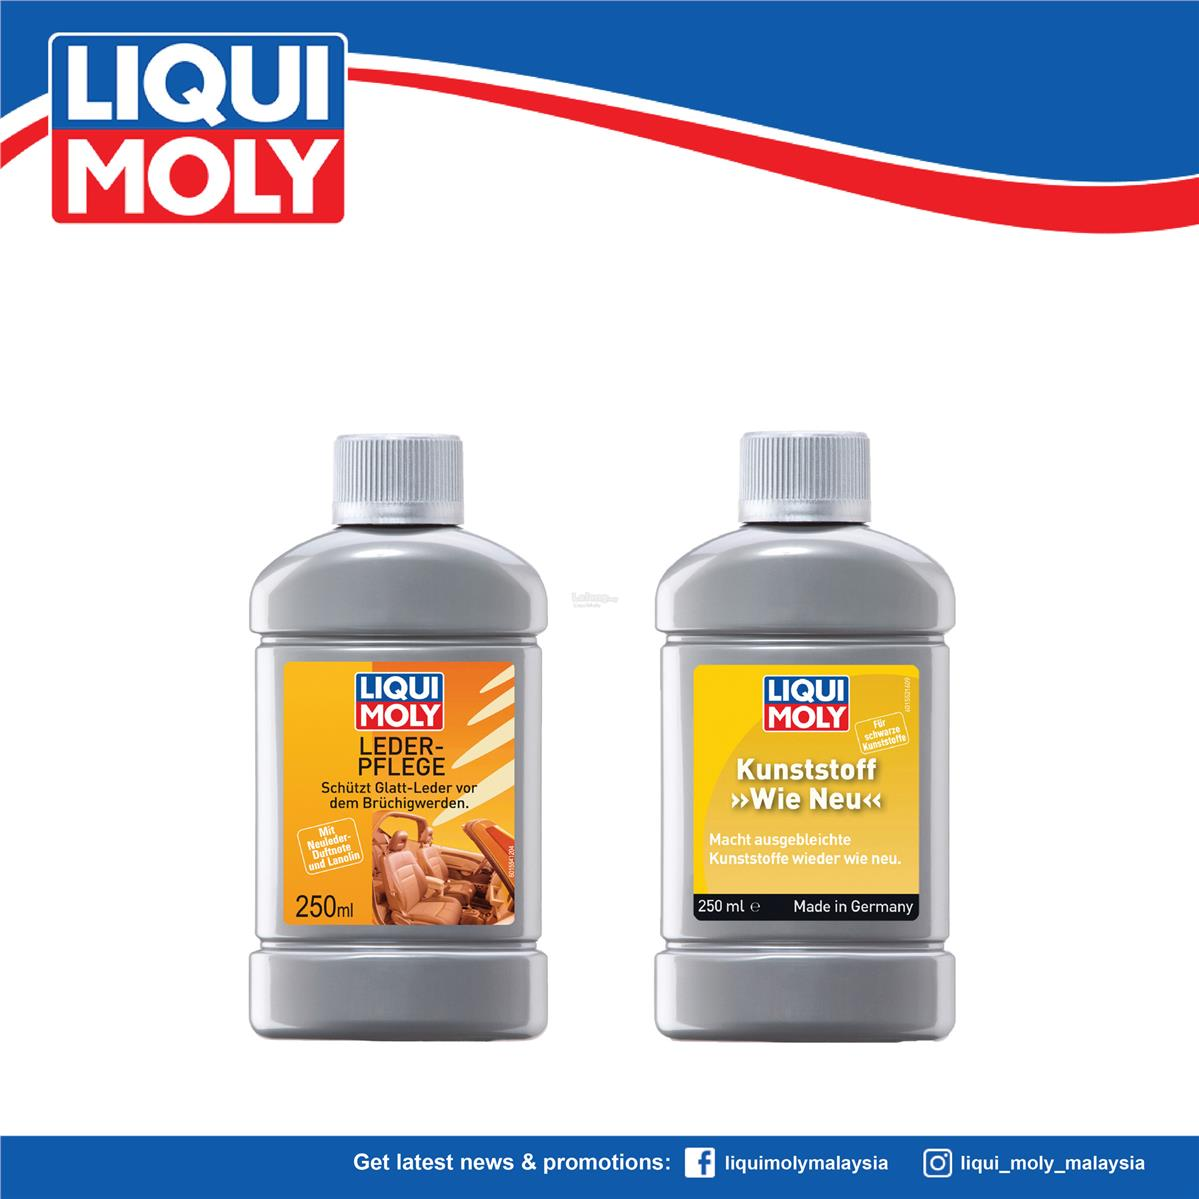 Liqui Moly Plastic 'LIKE NEW' Black & Leather Care, Car Care 1552/1554